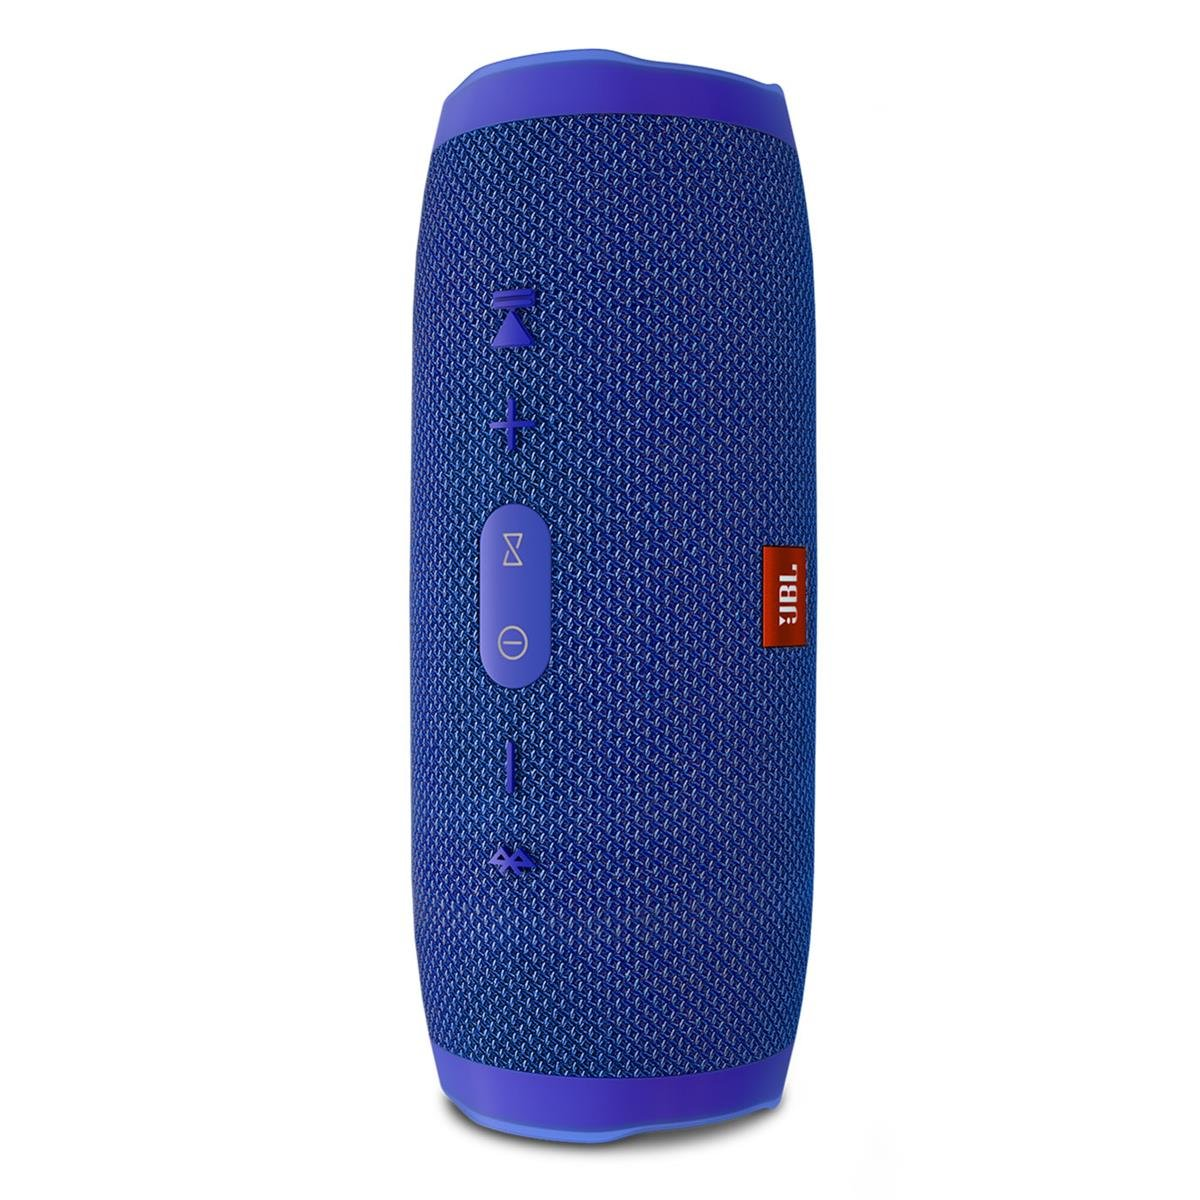 JBL Charge 3 Waterproof Bluetooth Speaker -Blue (Certified Refurbished) by JBL (Image #4)